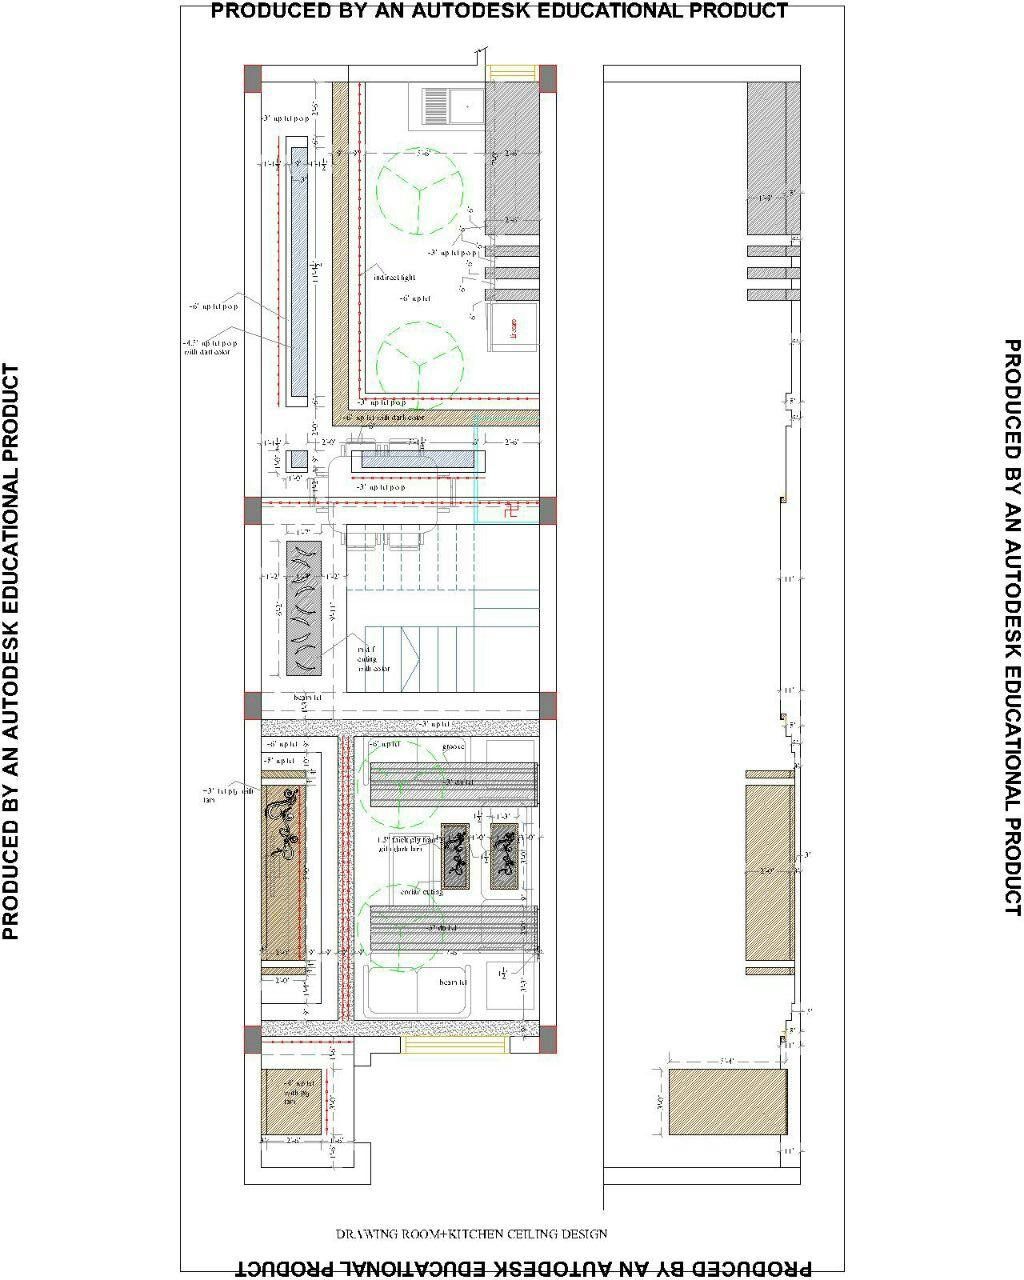 Drawing A Room Plan Drawing Room Kitchen Ceiling Plan Gharexpert